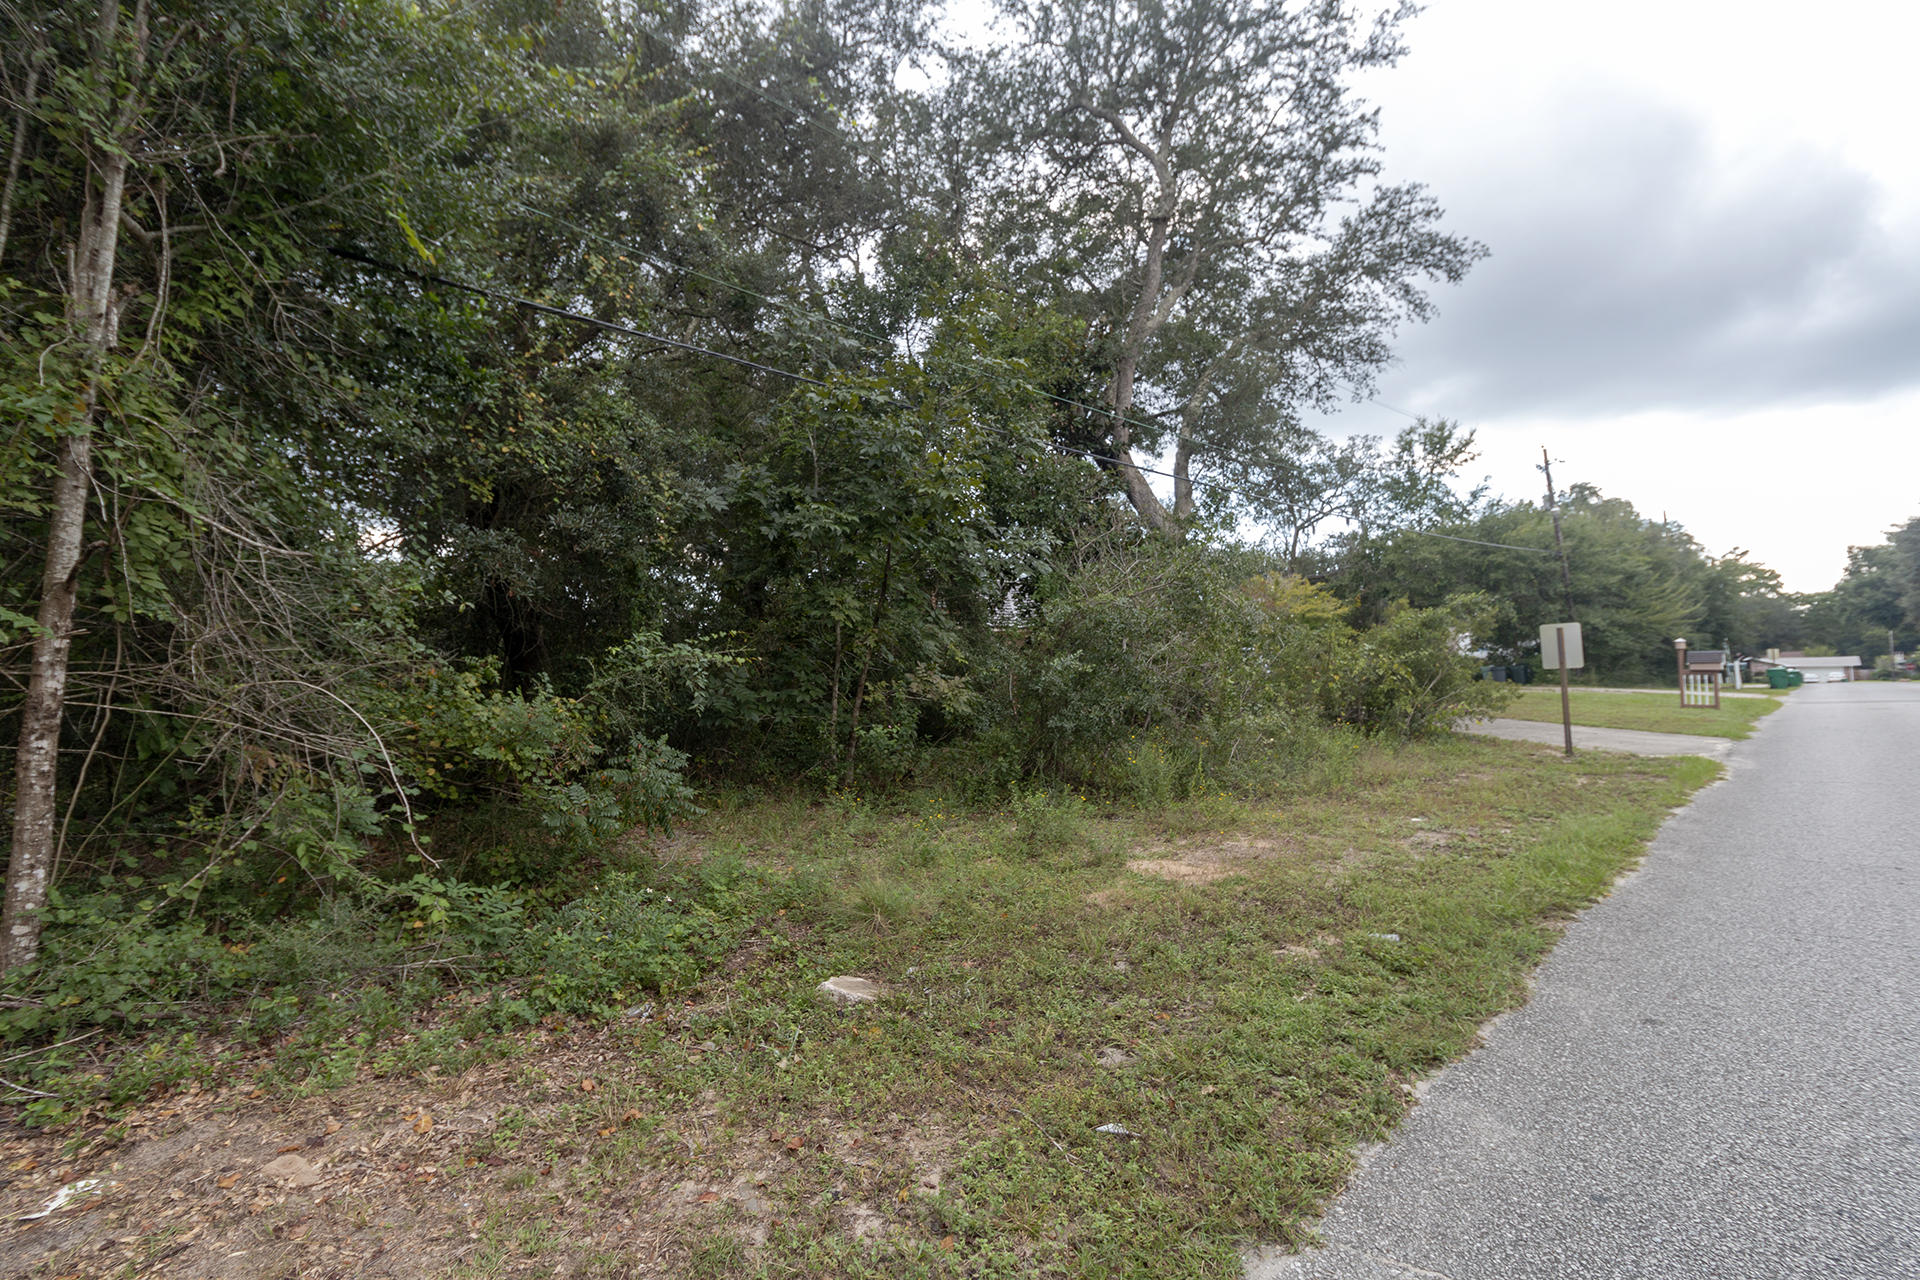 Fort Walton Beach Real Estate Listing, featured MLS property E807755